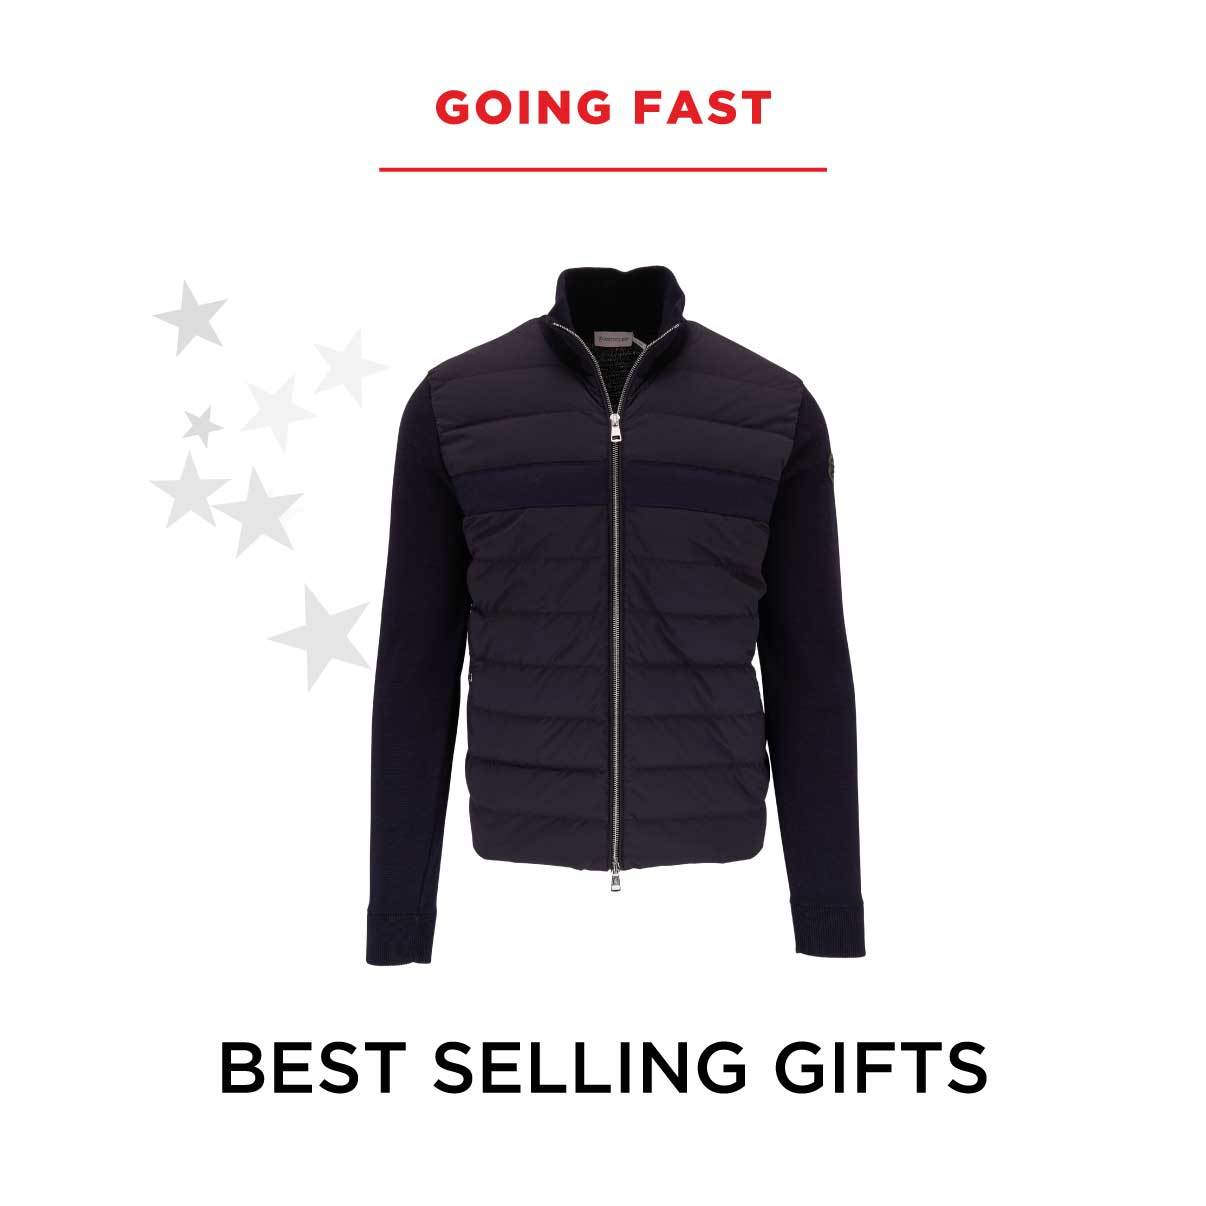 Best Selling gifts for him